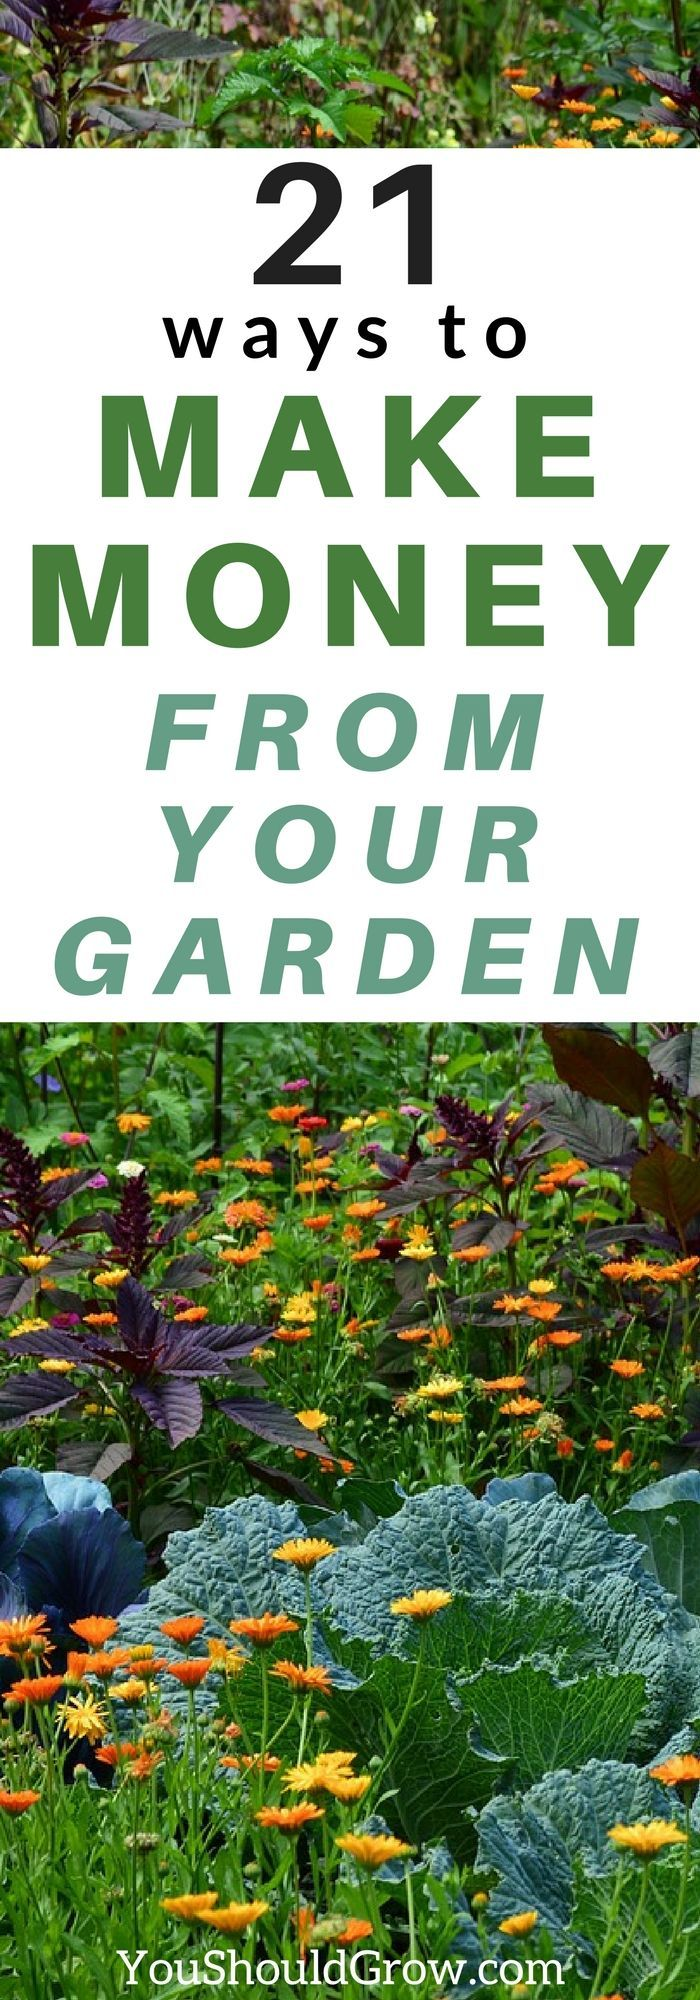 Gardening can be more than just a hobby! Learn how you can make a profit from your home garden. Over 20 ideas so you can start earning now! #money #gardening